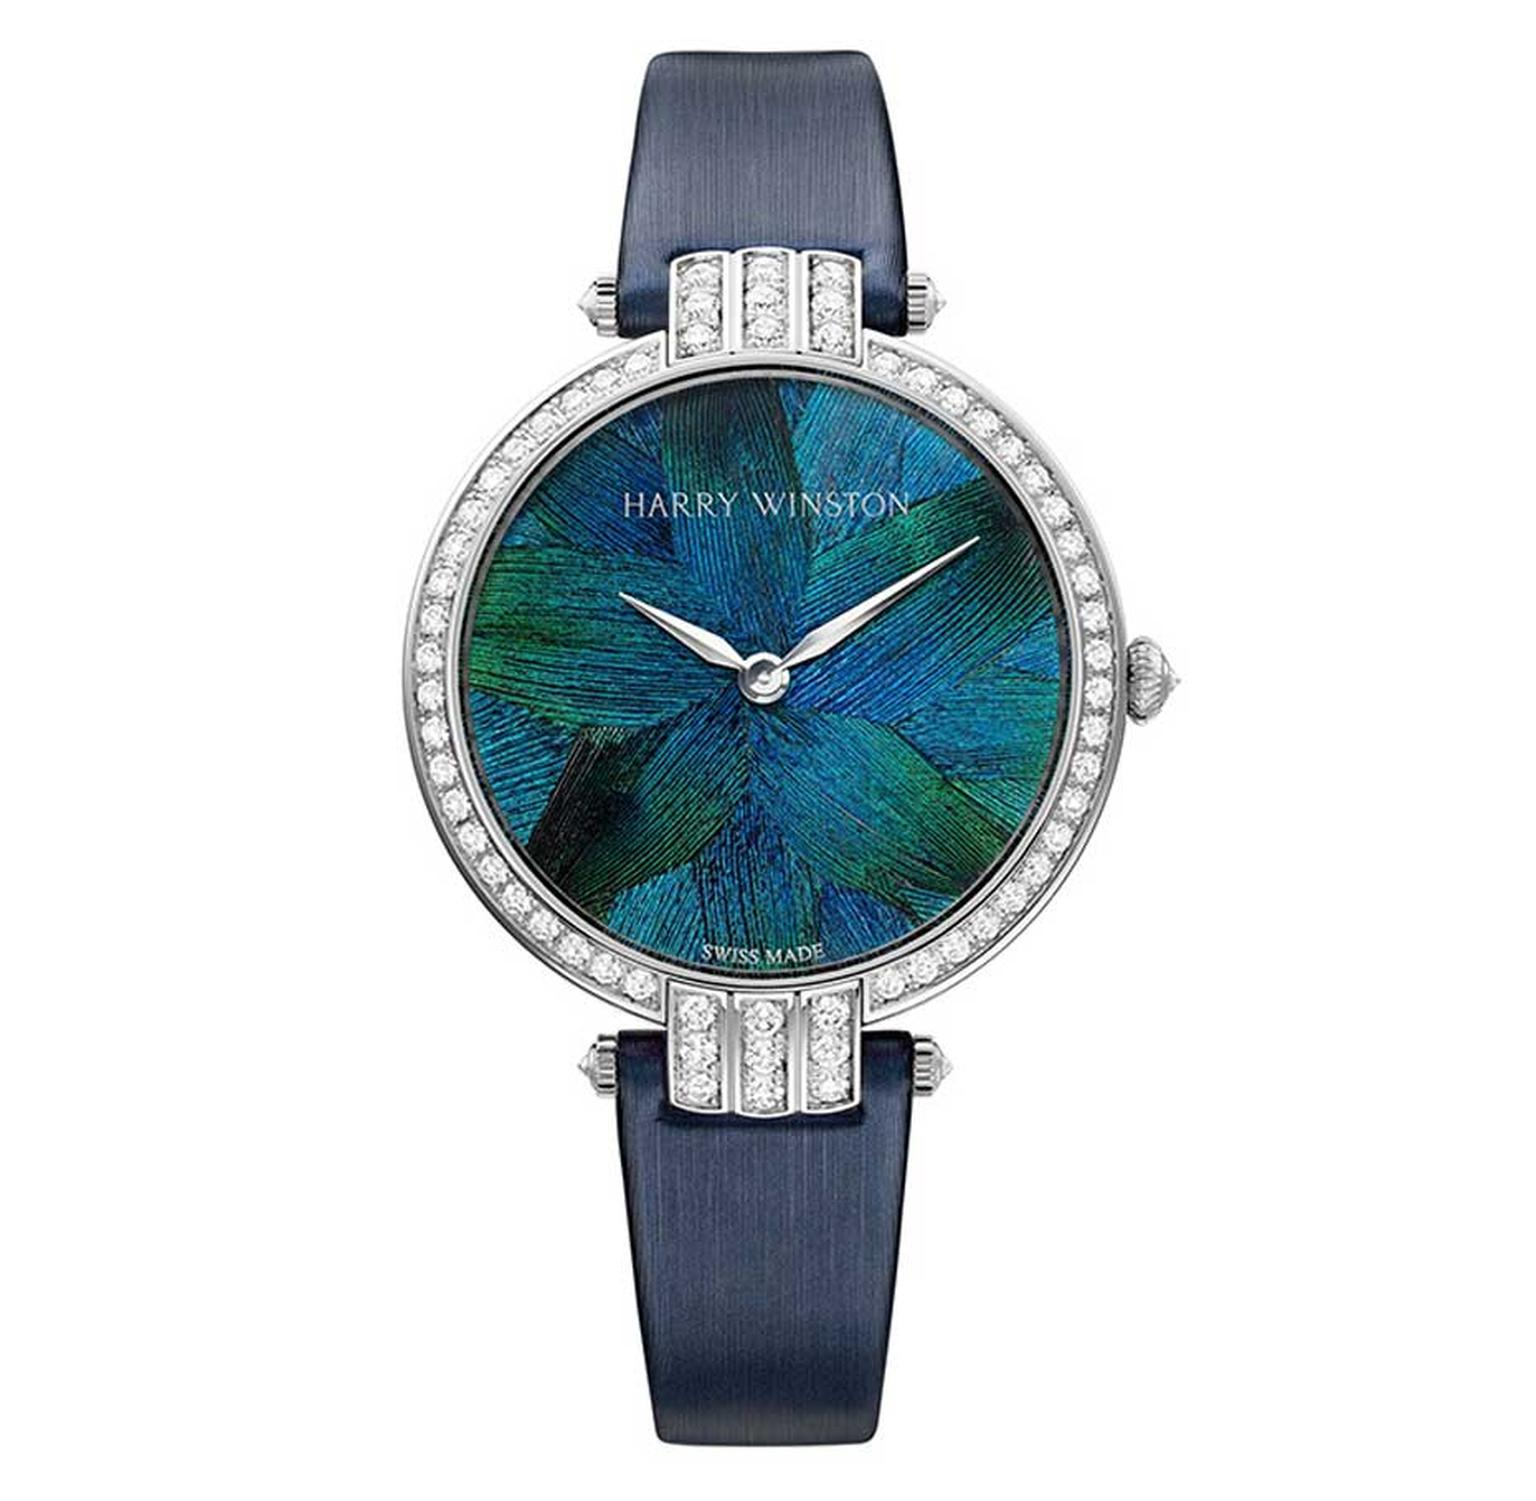 Harry Winston Premier Collection with marquetry of peacock feathers housed in a 36mm white gold case with 96 brilliant-cut diamonds on the bezel, crown, lugs and buckle.